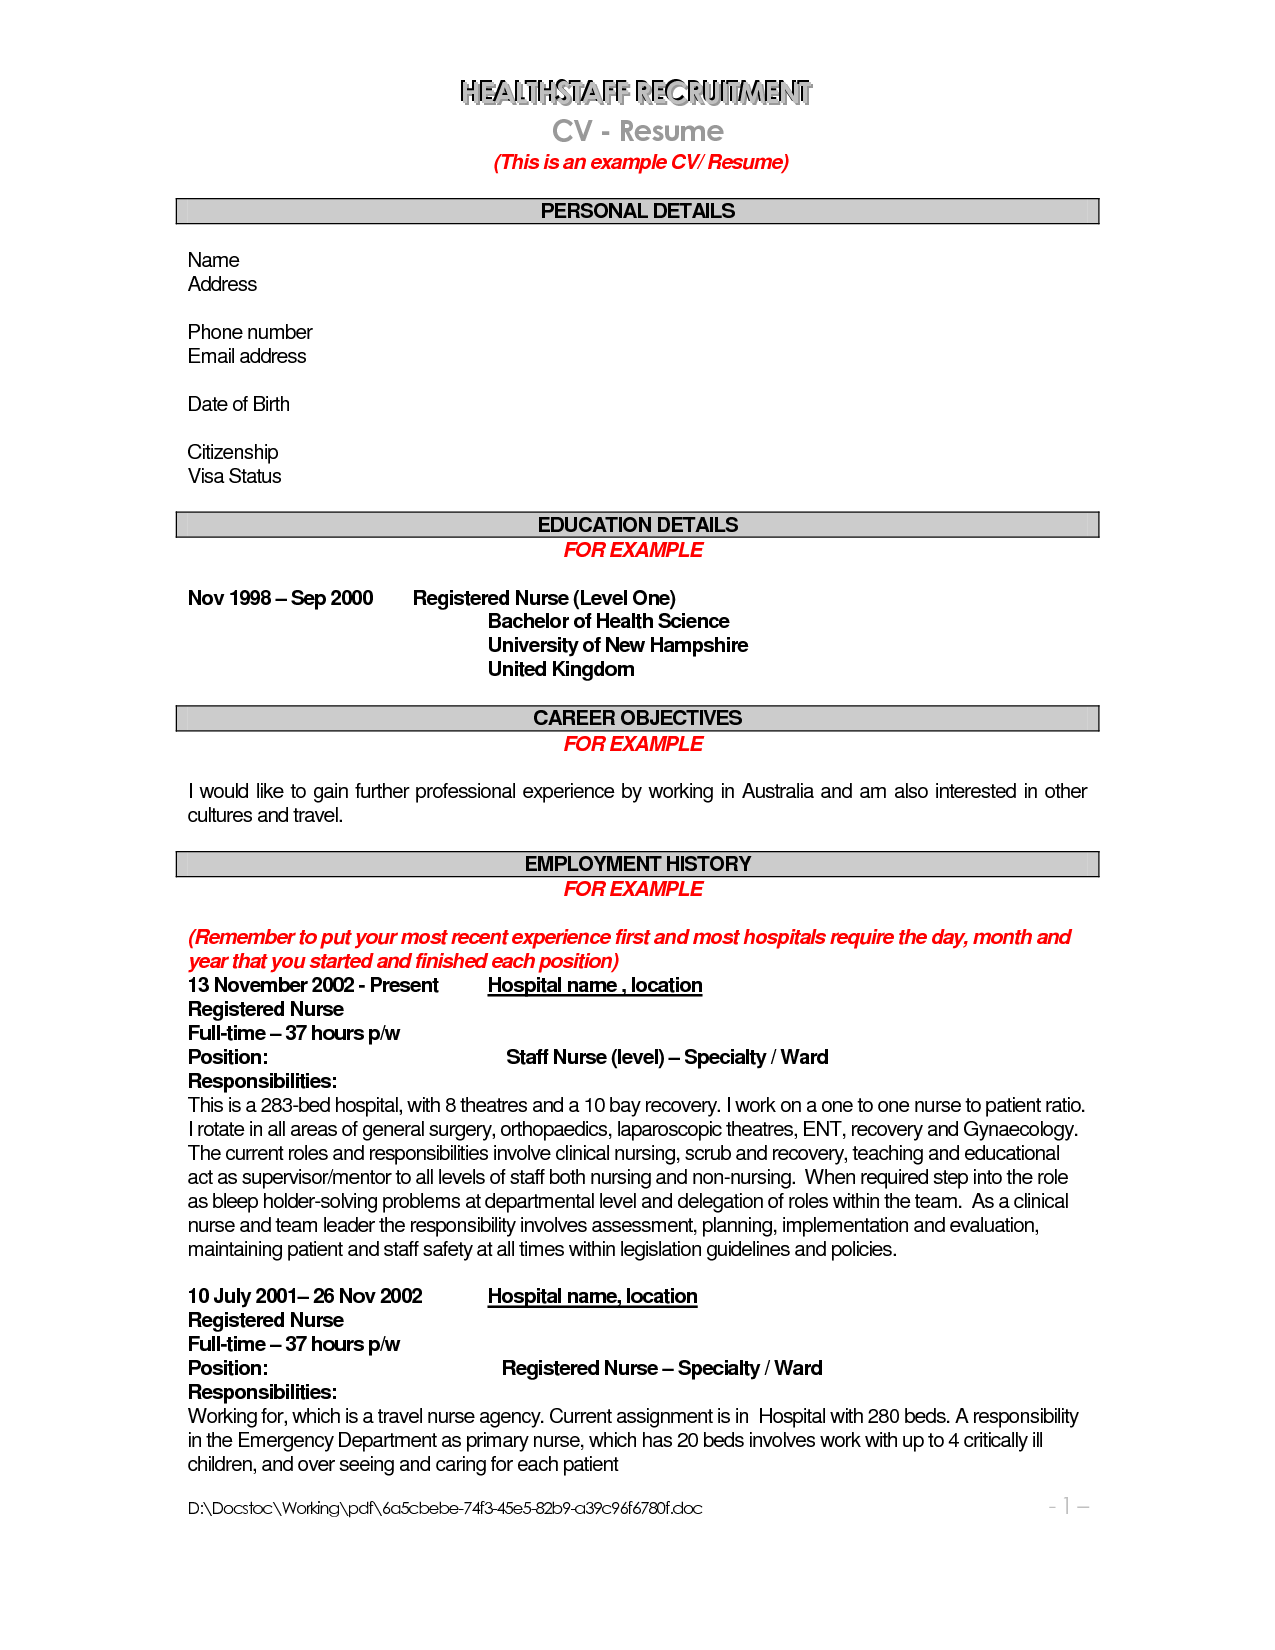 Resume Employment History Resume Samples For Jobs Australia Example Template Free Cover